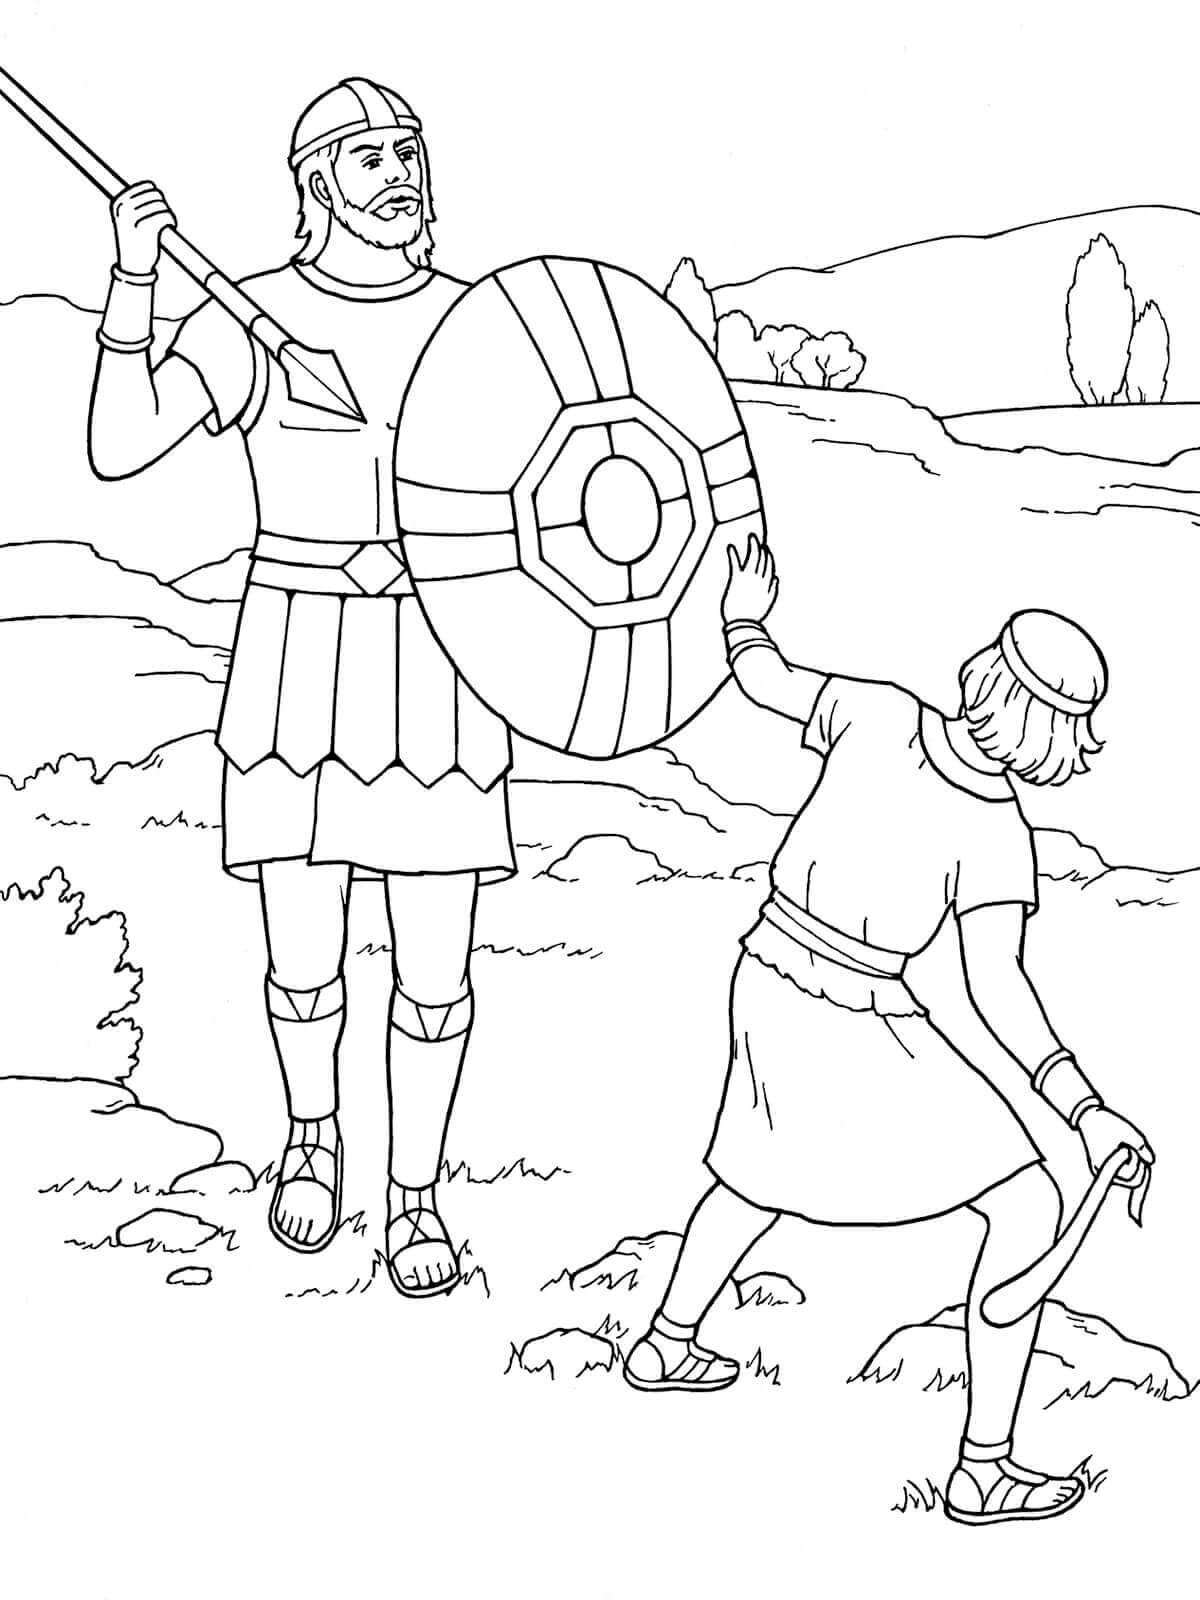 David And Goliath Sunday School Coloring Page Sunday School Coloring Pages David And Goliath Superhero Coloring Pages